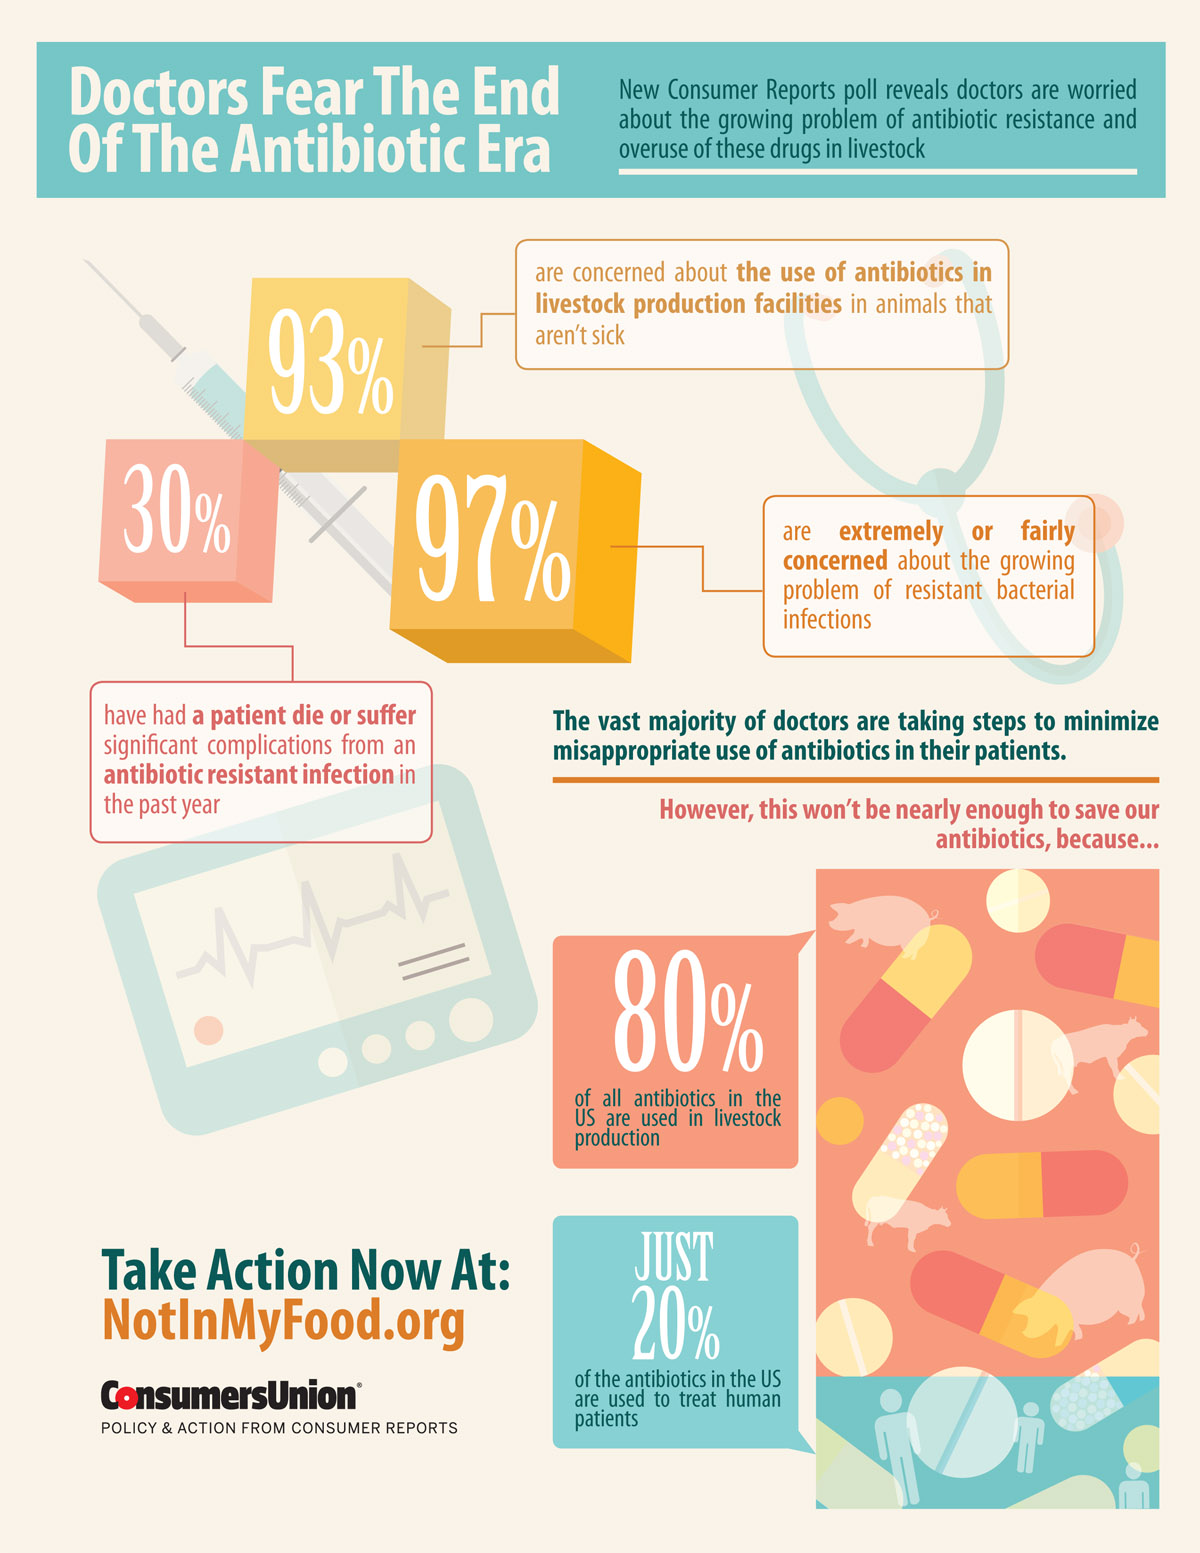 Poll 9 Out Of 10 Doctors Concerned About Antibiotics In